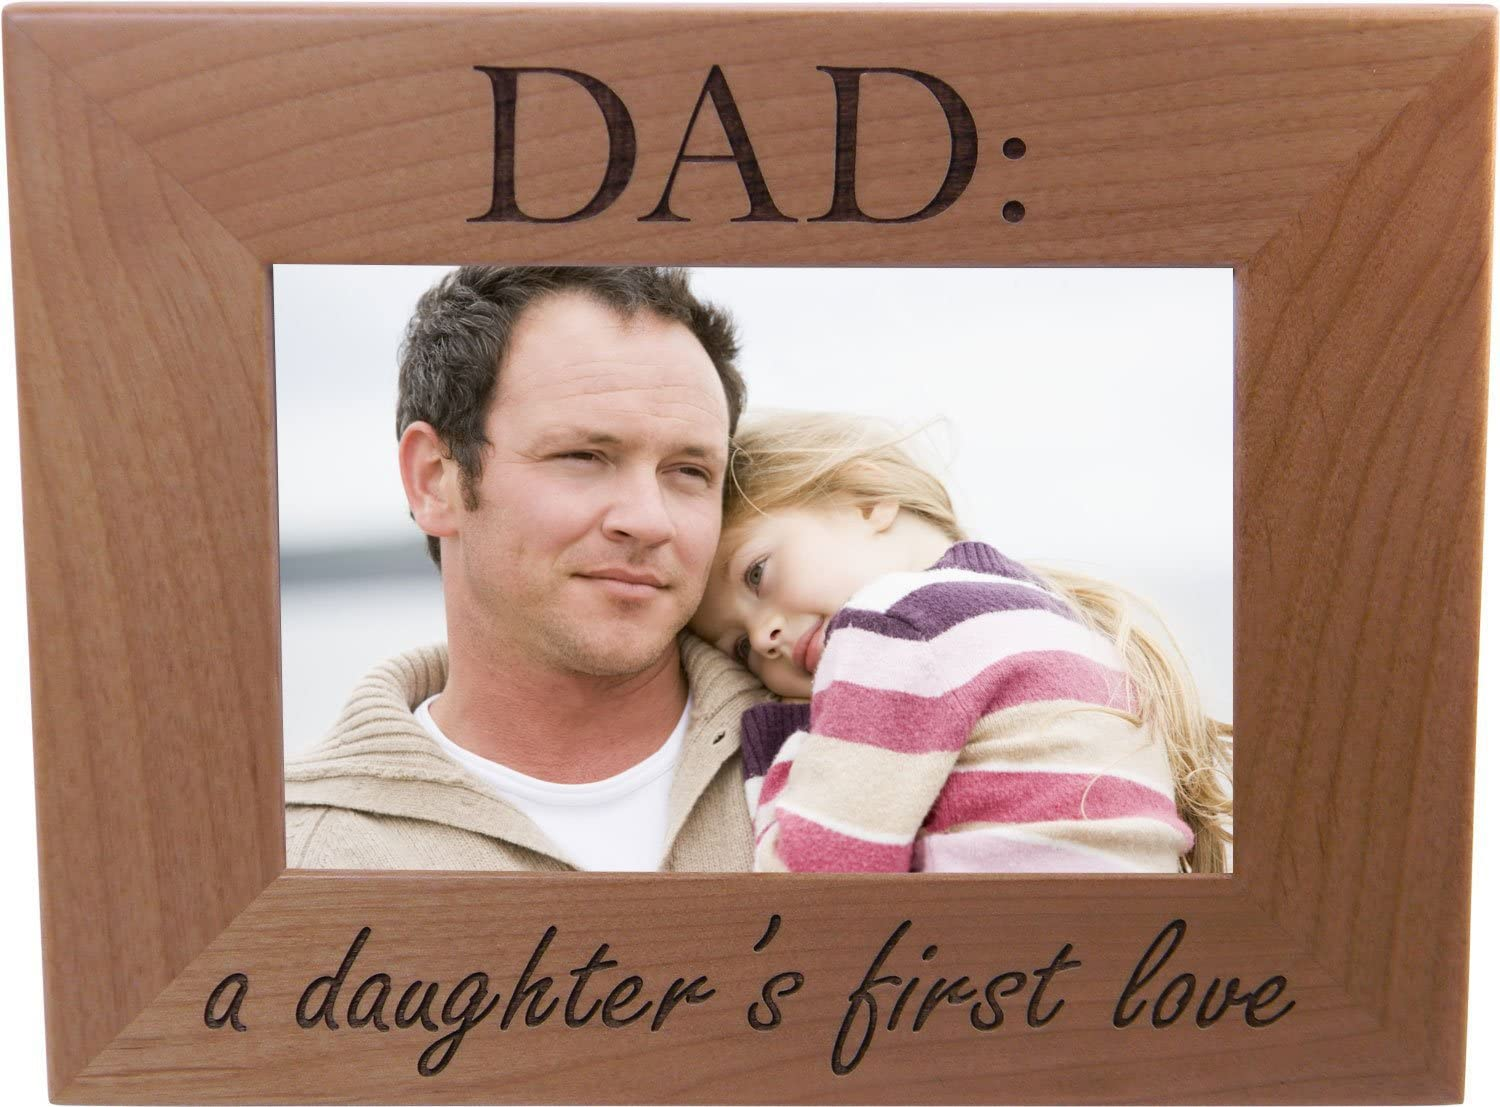 Dad: A Daughter's First Love 4x6 New mail order Genuine Picture Inch Frame Wood - Great